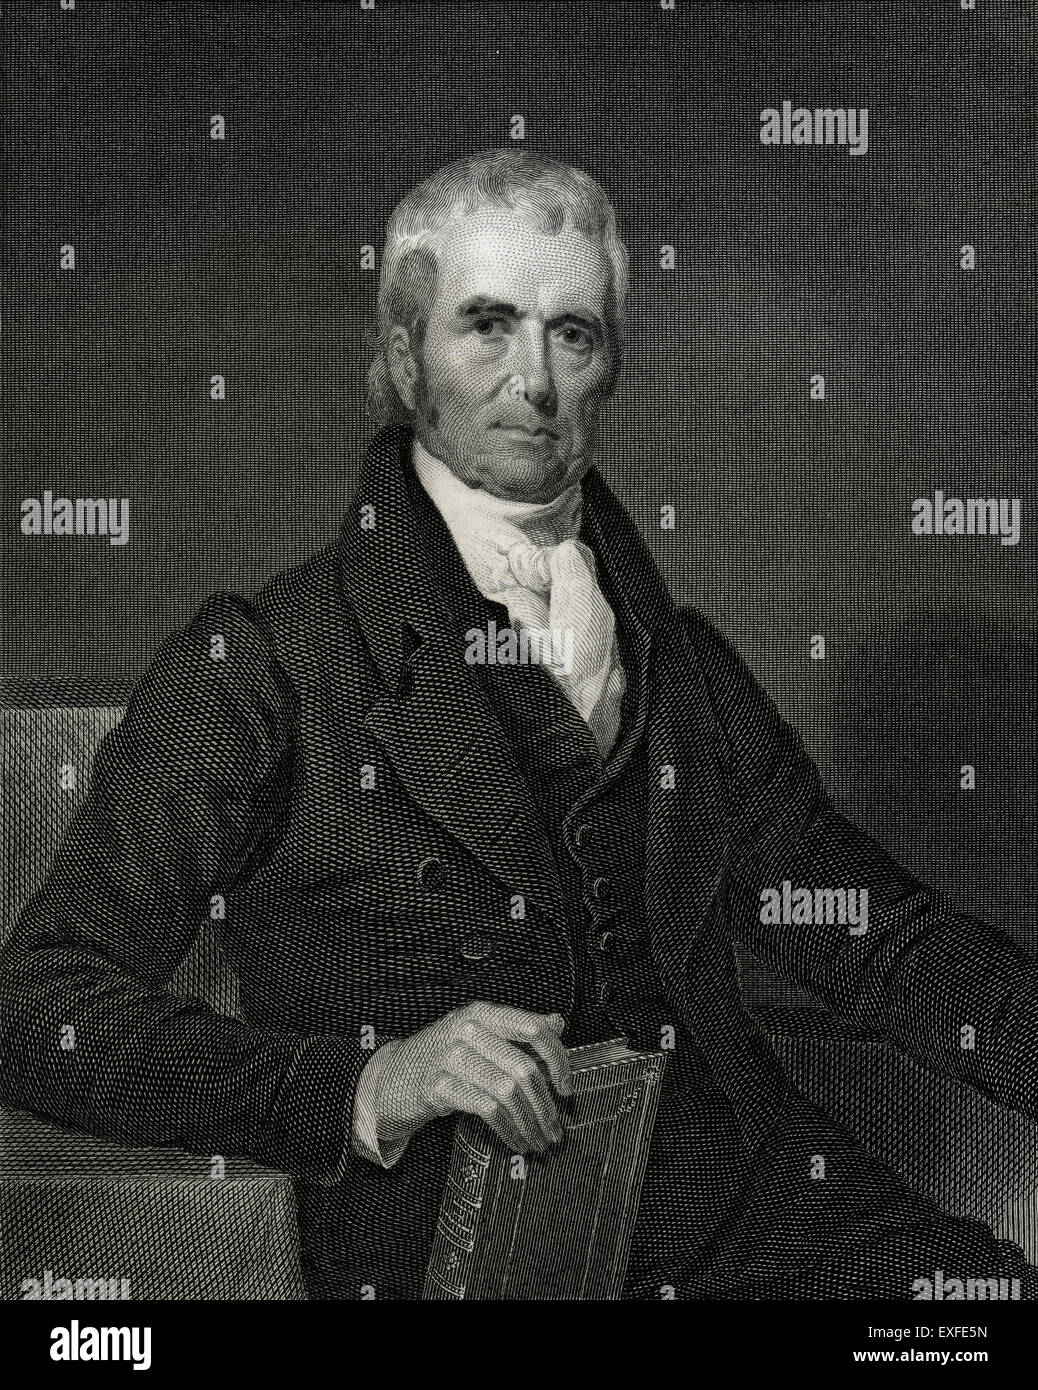 Antique c1860 engraving, John Marshall LL.D. John Marshall (1755-1835) was the fourth Chief Justice of the Supreme - Stock Image